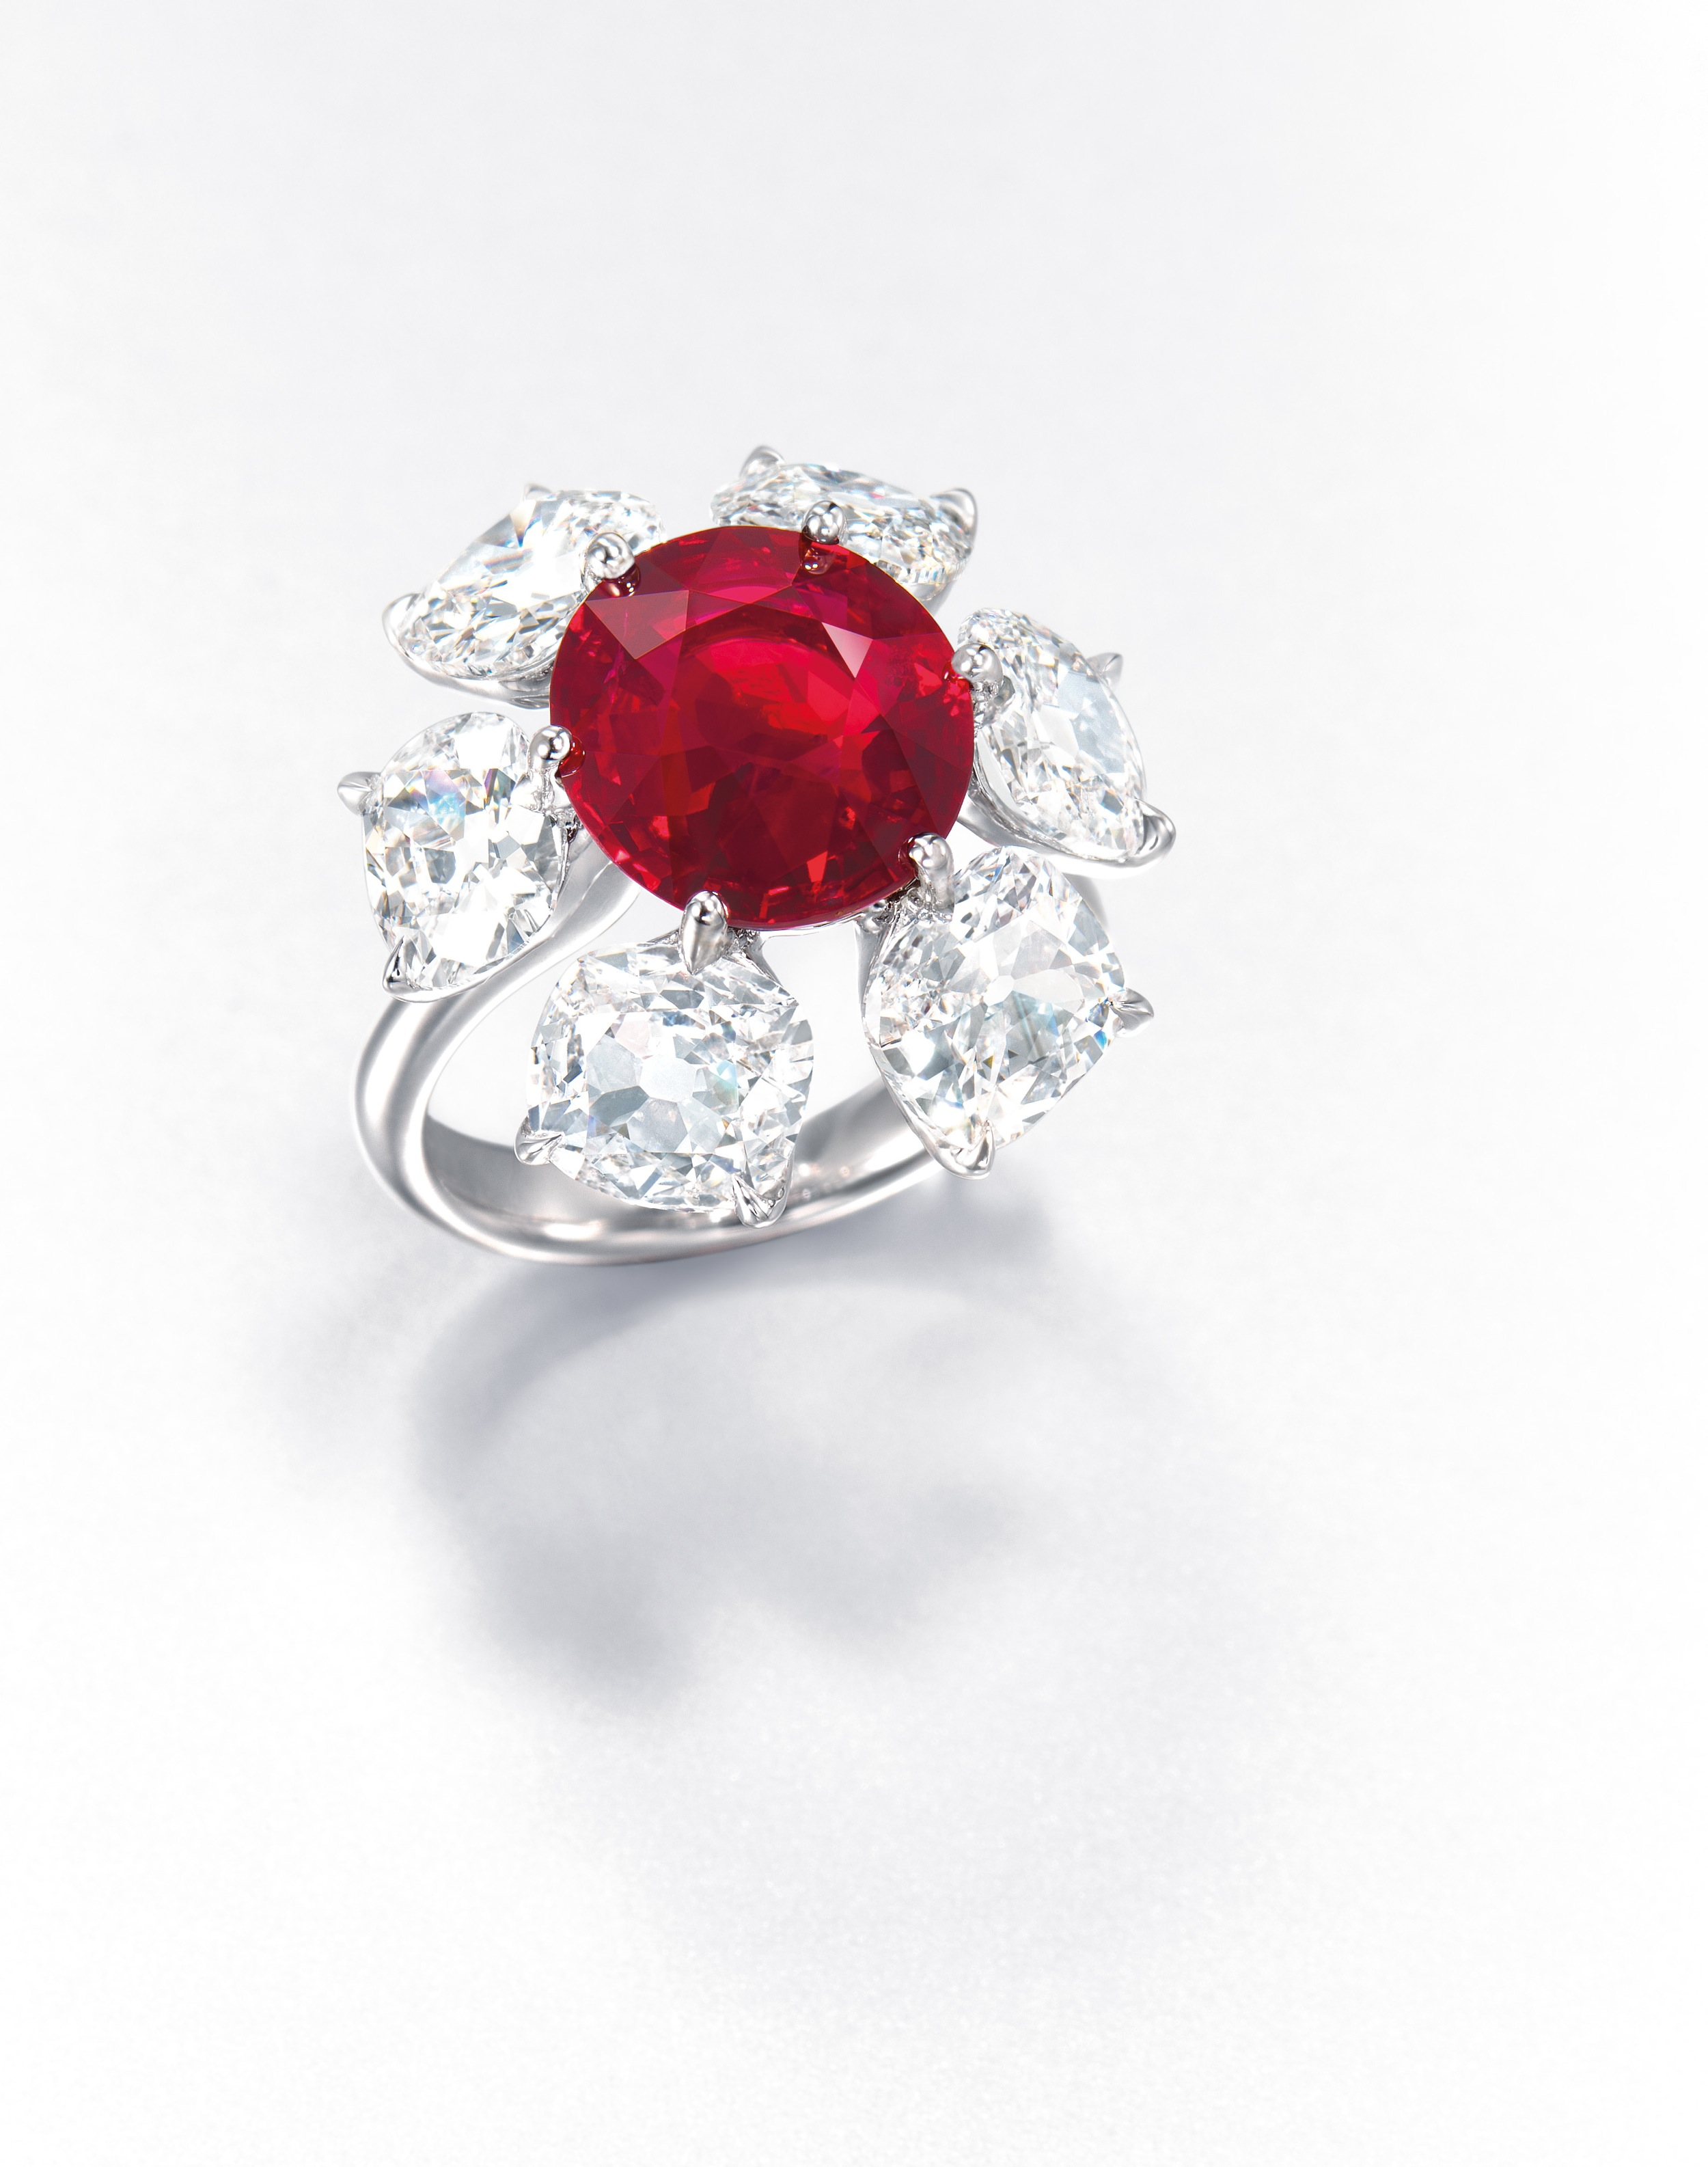 blood diamond ring ringscladdagh dramatic diamond ring from jar at christie s